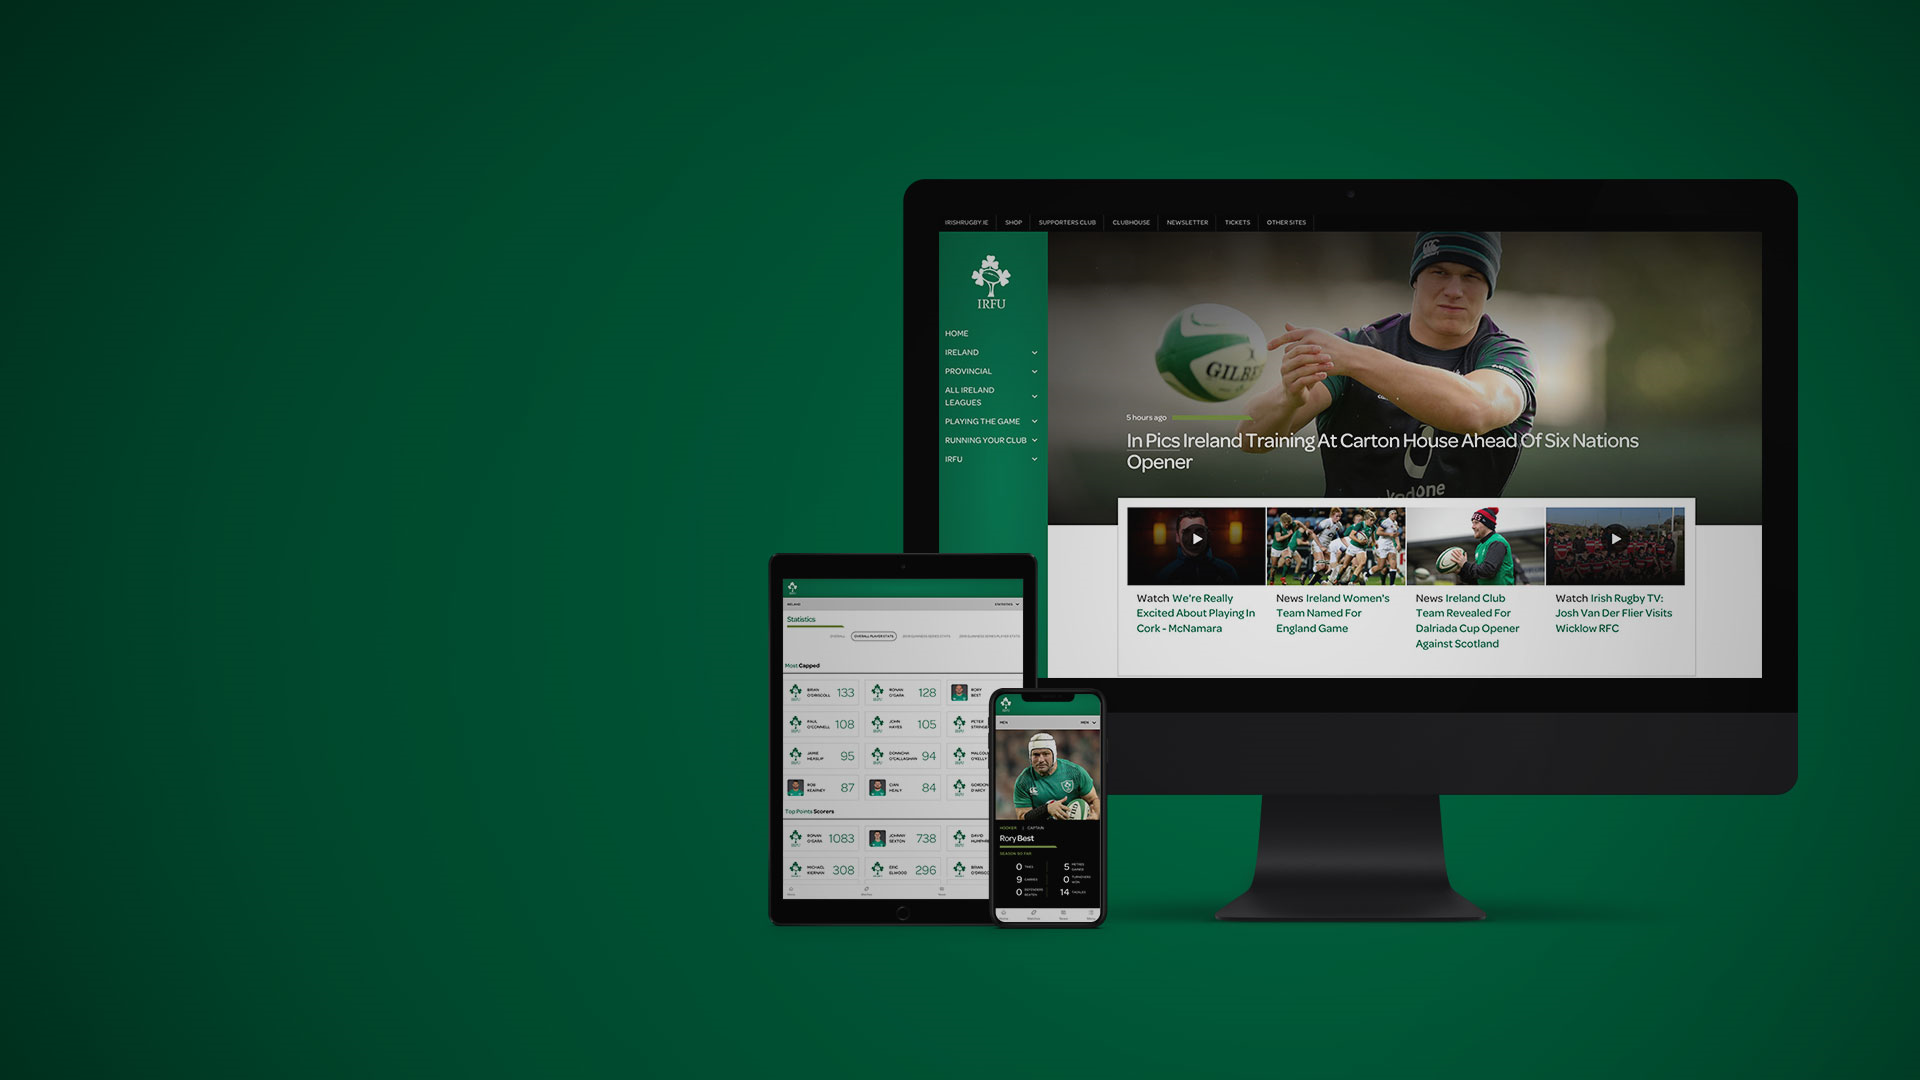 Sotic launches new digital platform for Irish Rugby